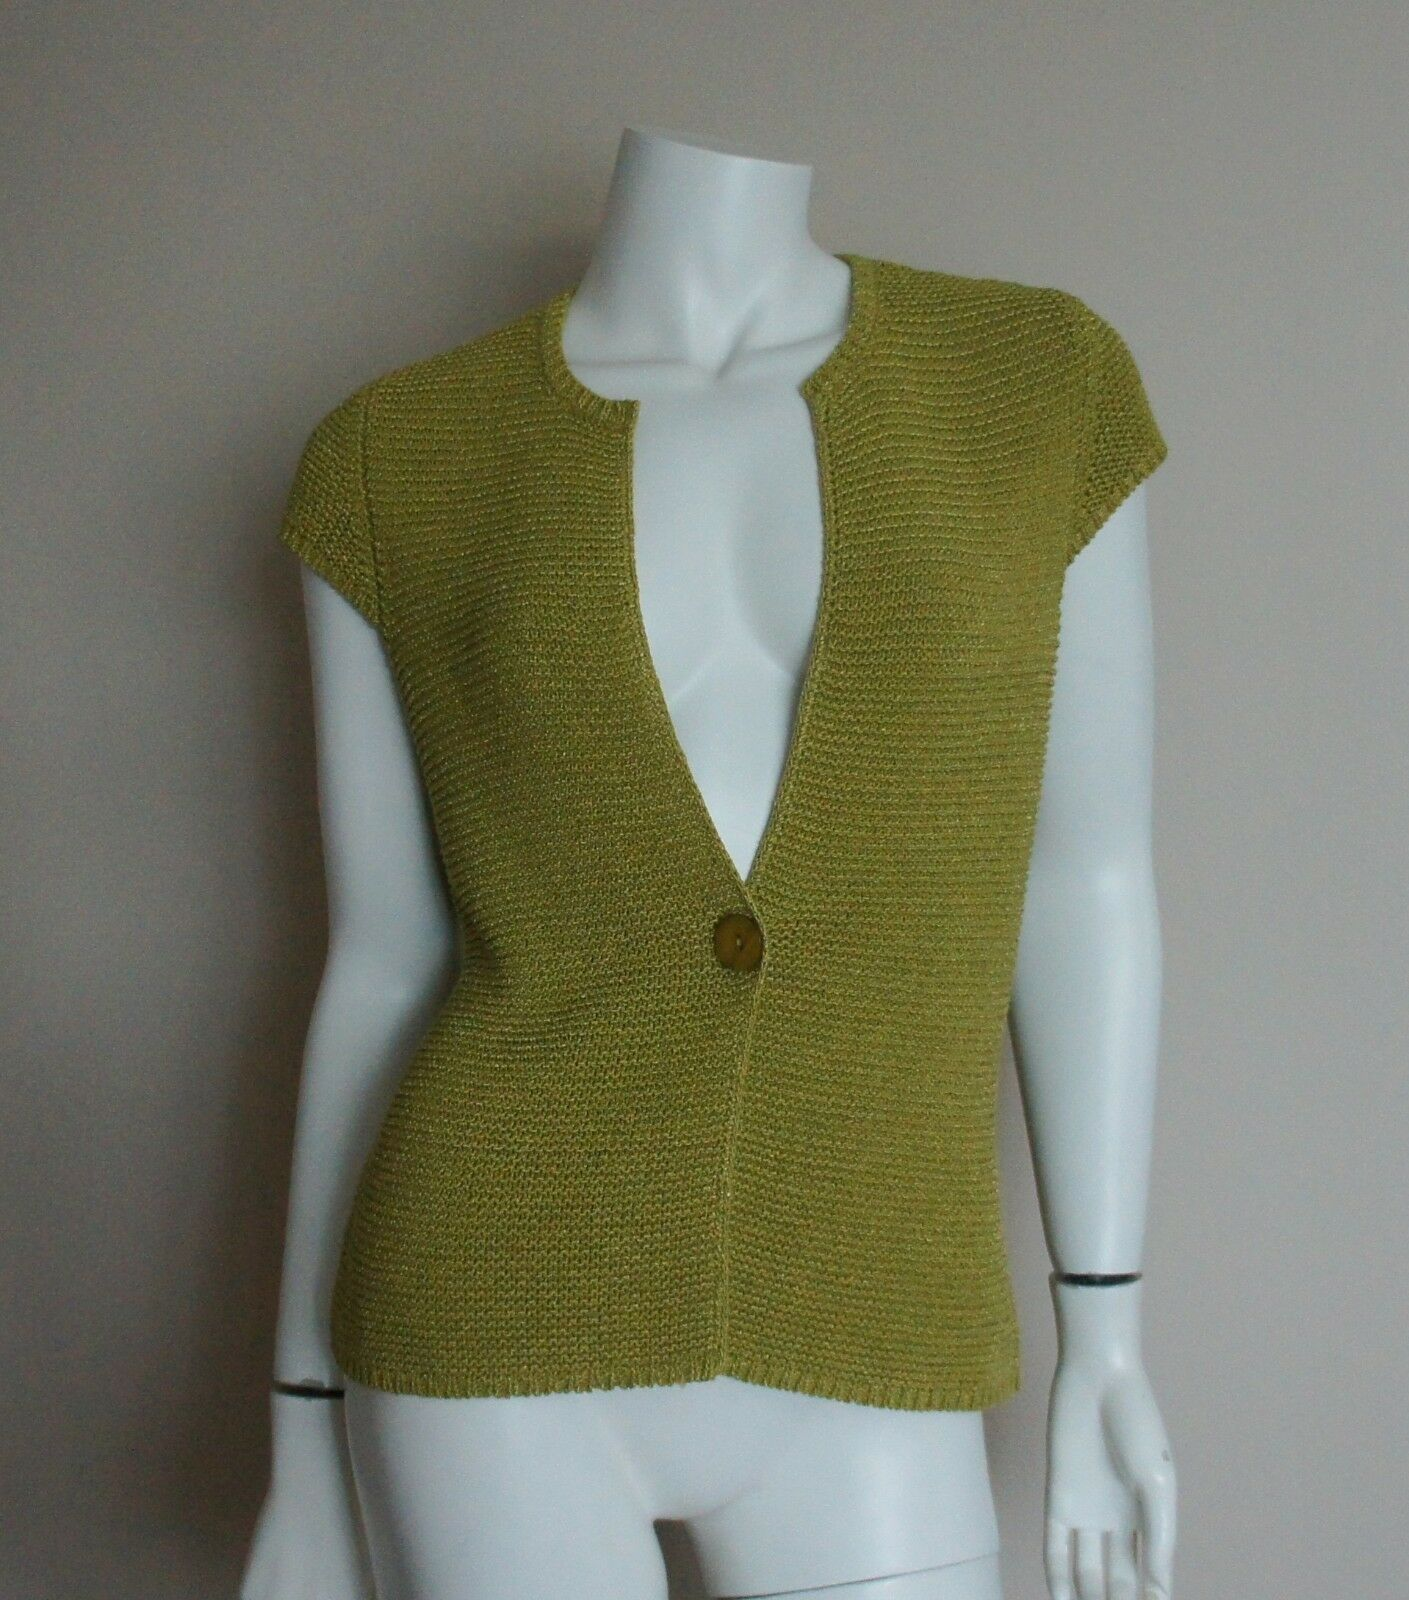 Jones New York Collection Green Knit Vest Sweater Size S